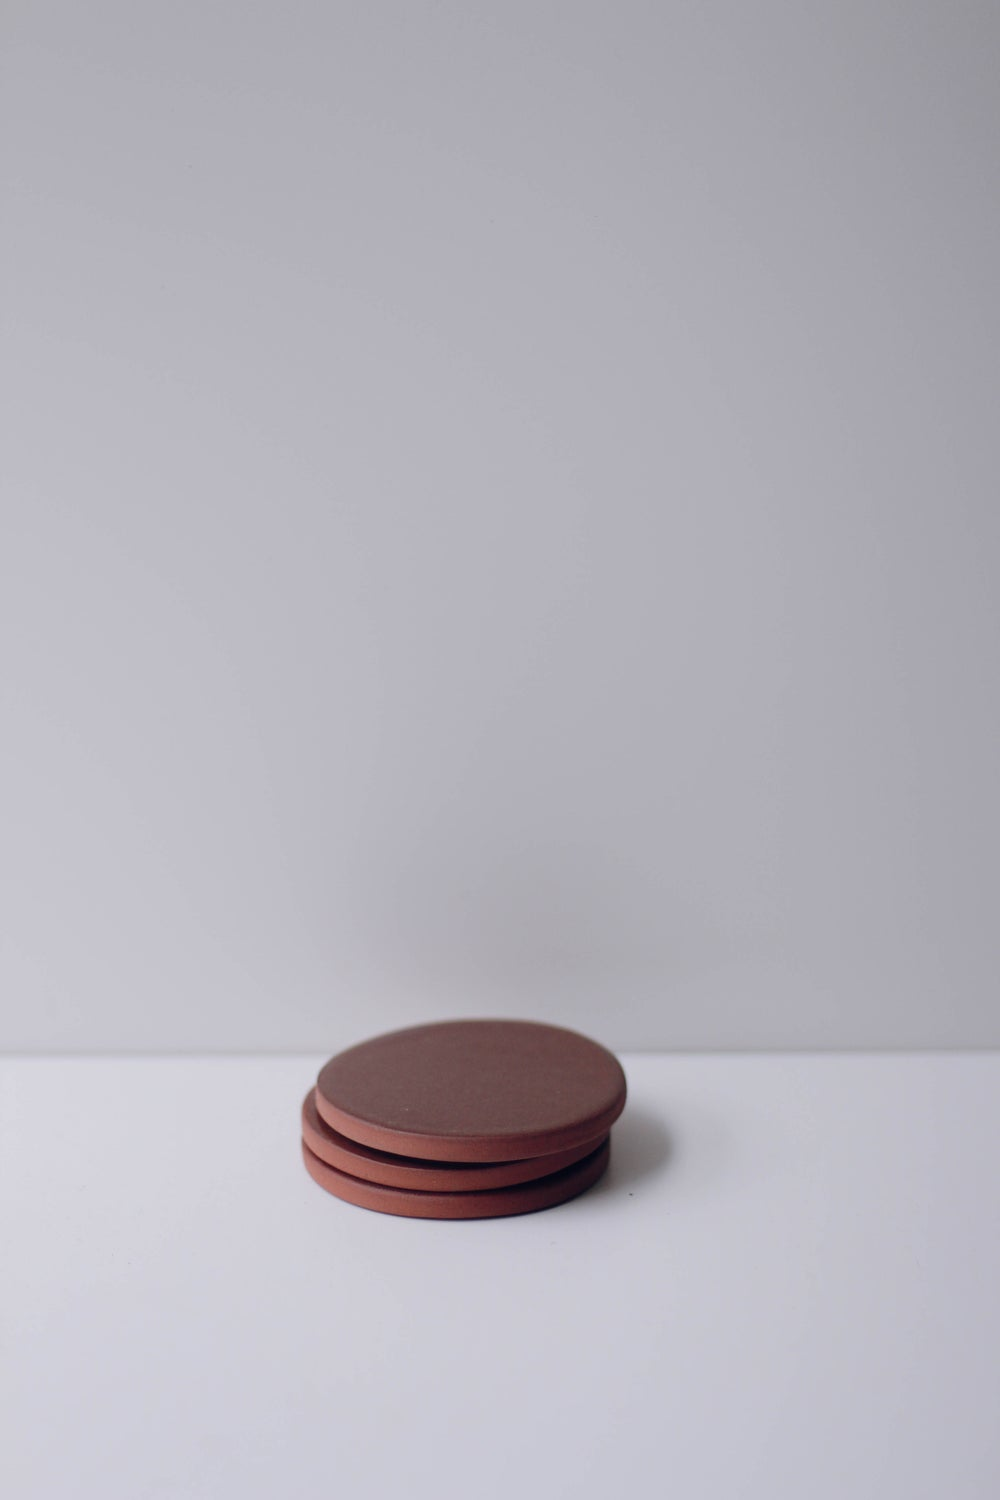 Image of Butter Dish Terracotta